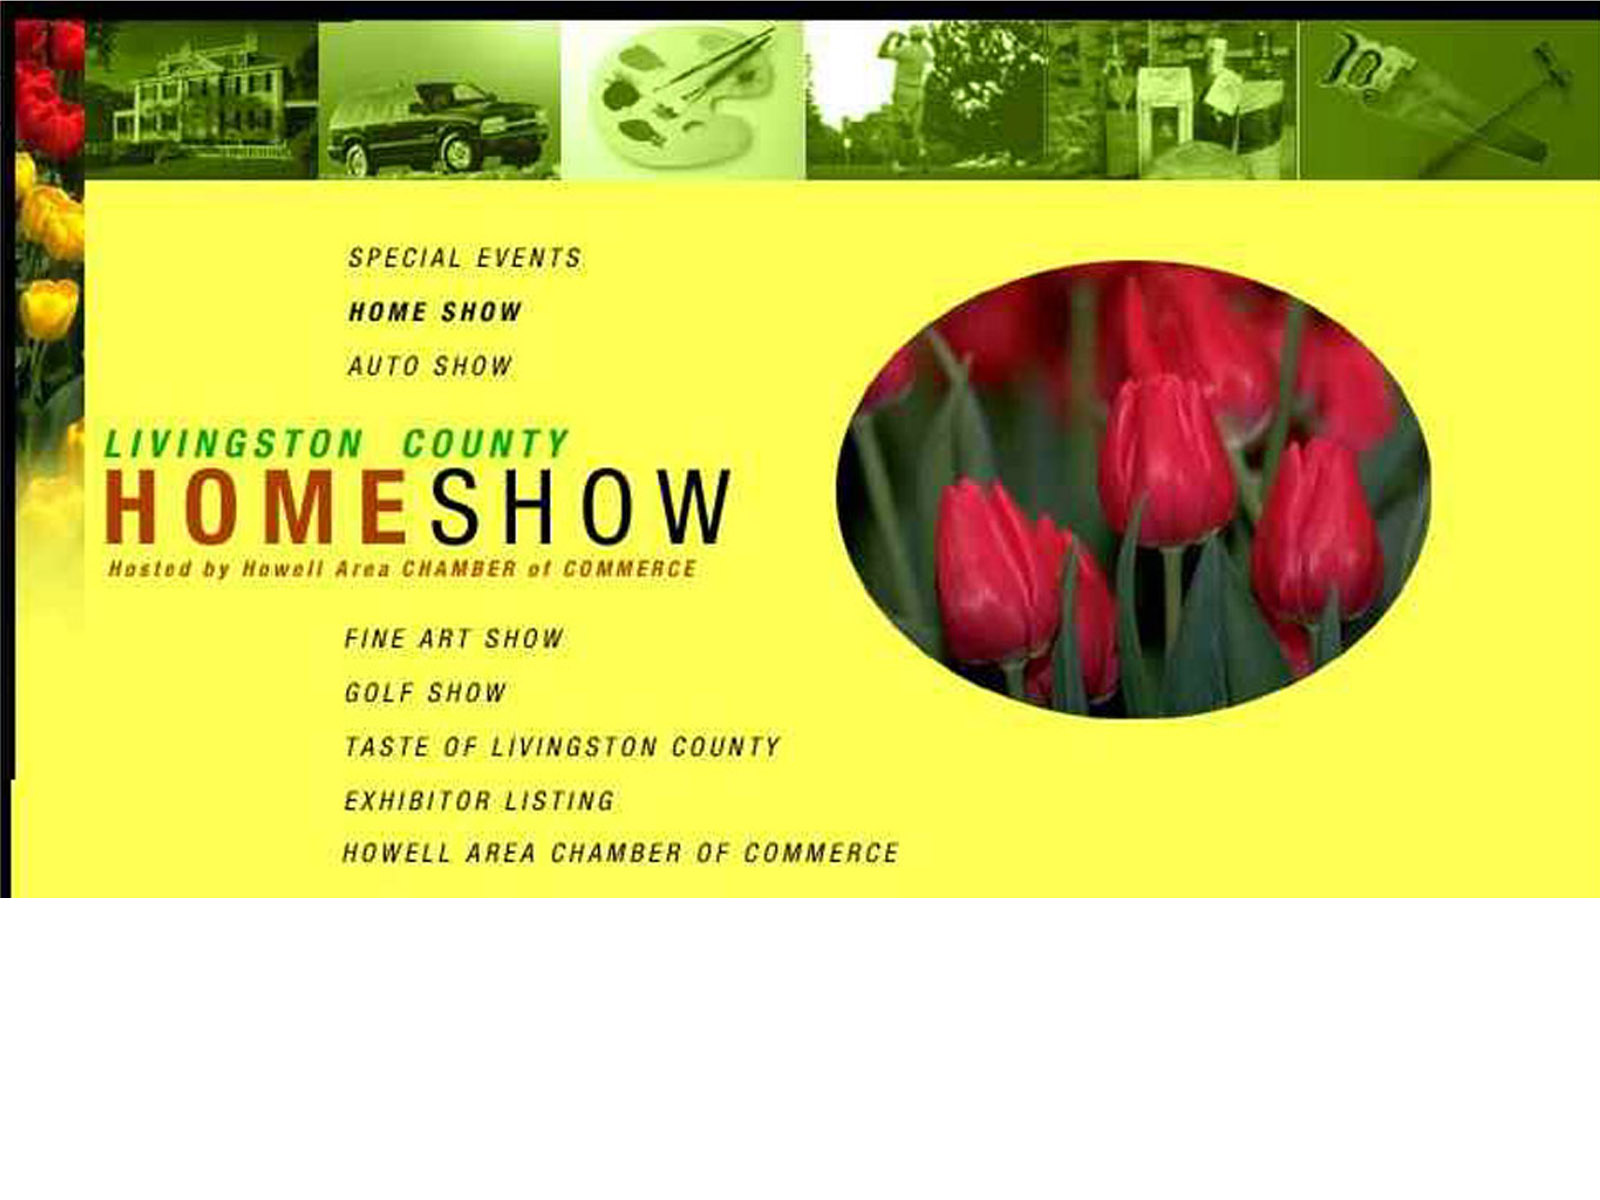 Livingston County Home Show